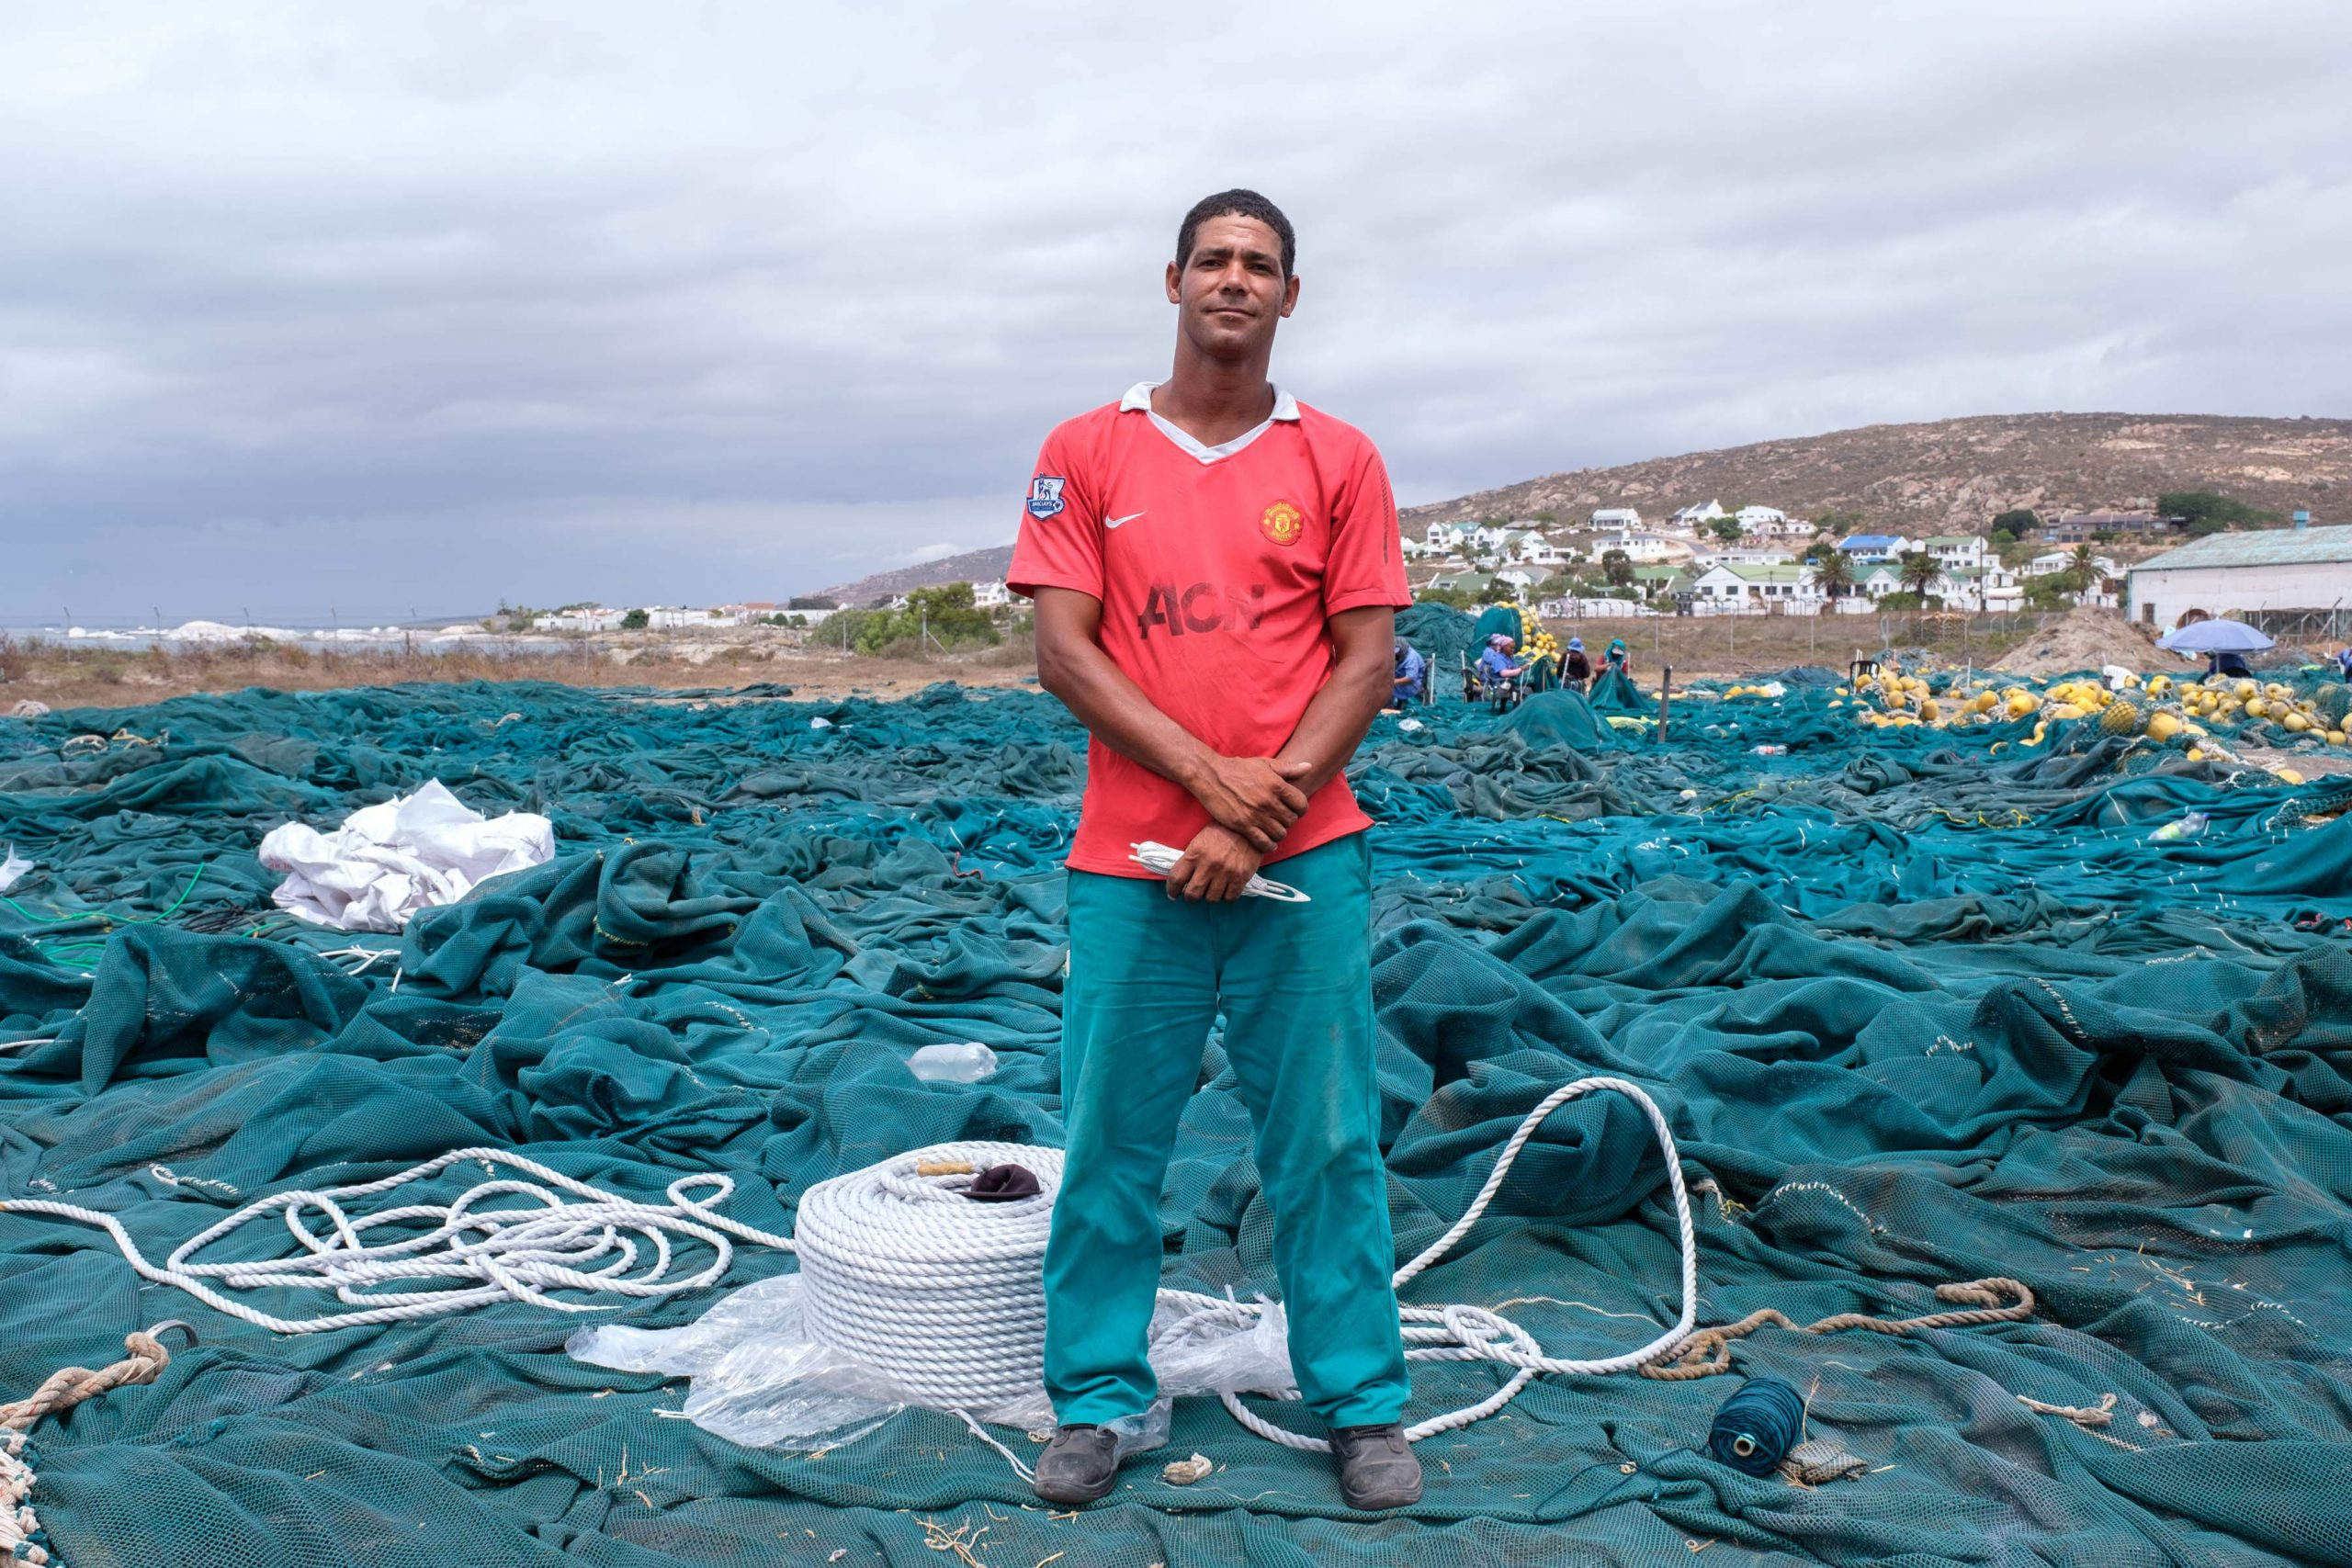 22 January 2020: Clinton Gordon standing on one of the nets he has helped repair.